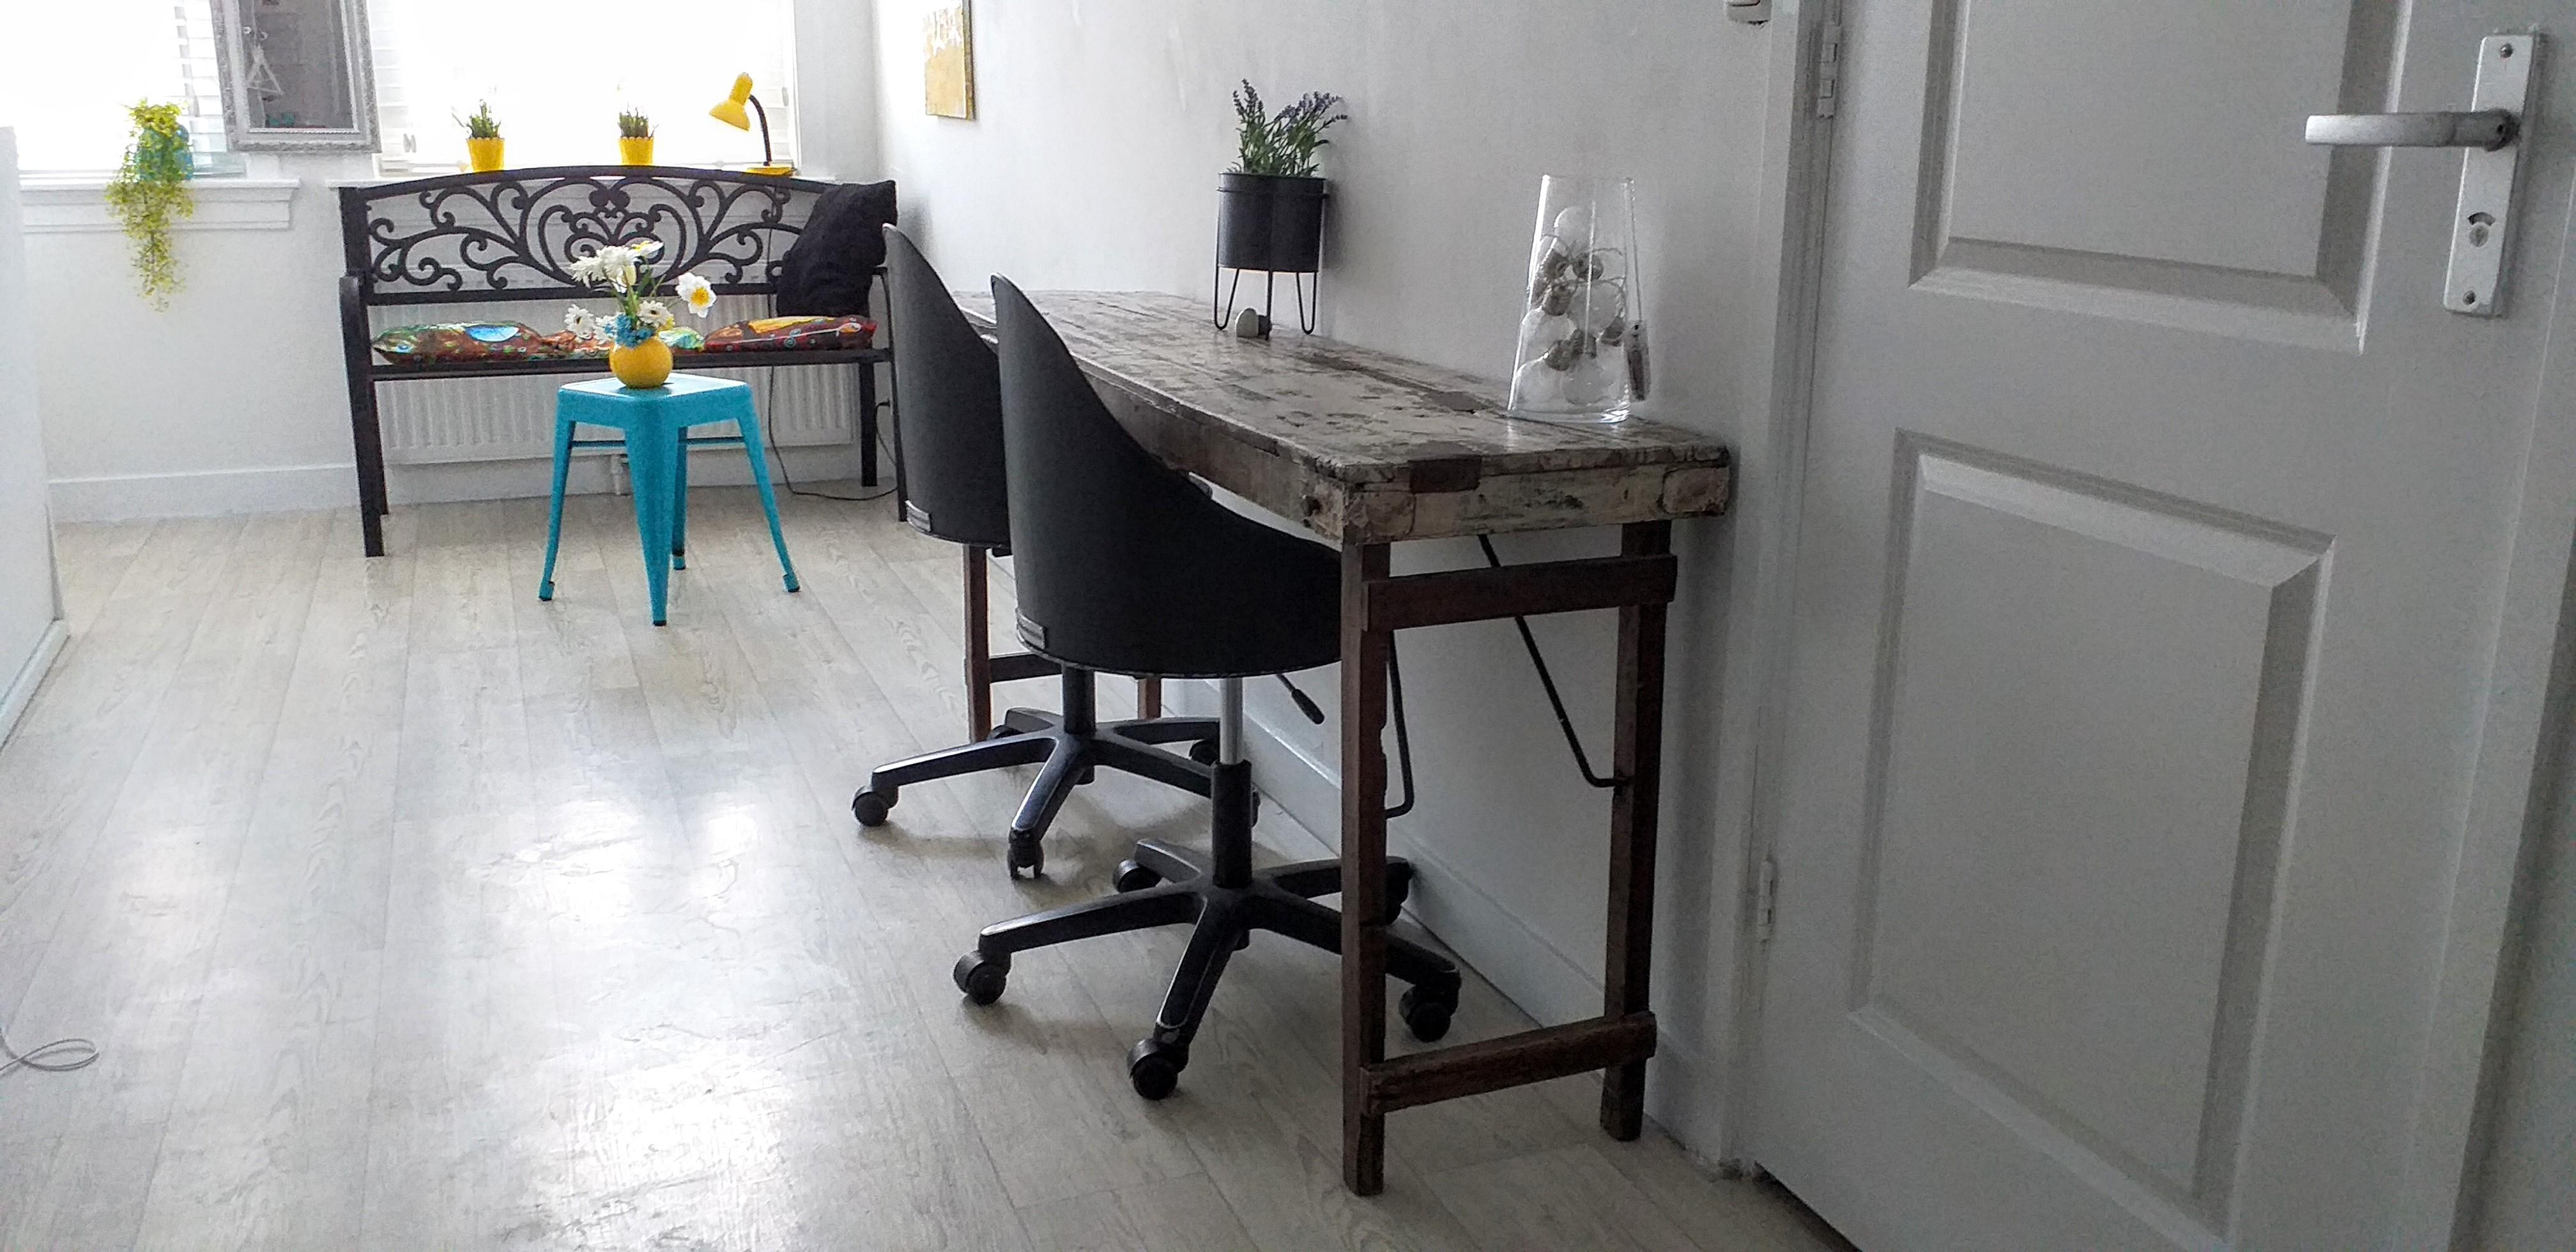 Apartment Clean 4 guest studio 2 KM  from Anne Frank house  3 KM from Dam Square photo 23229755